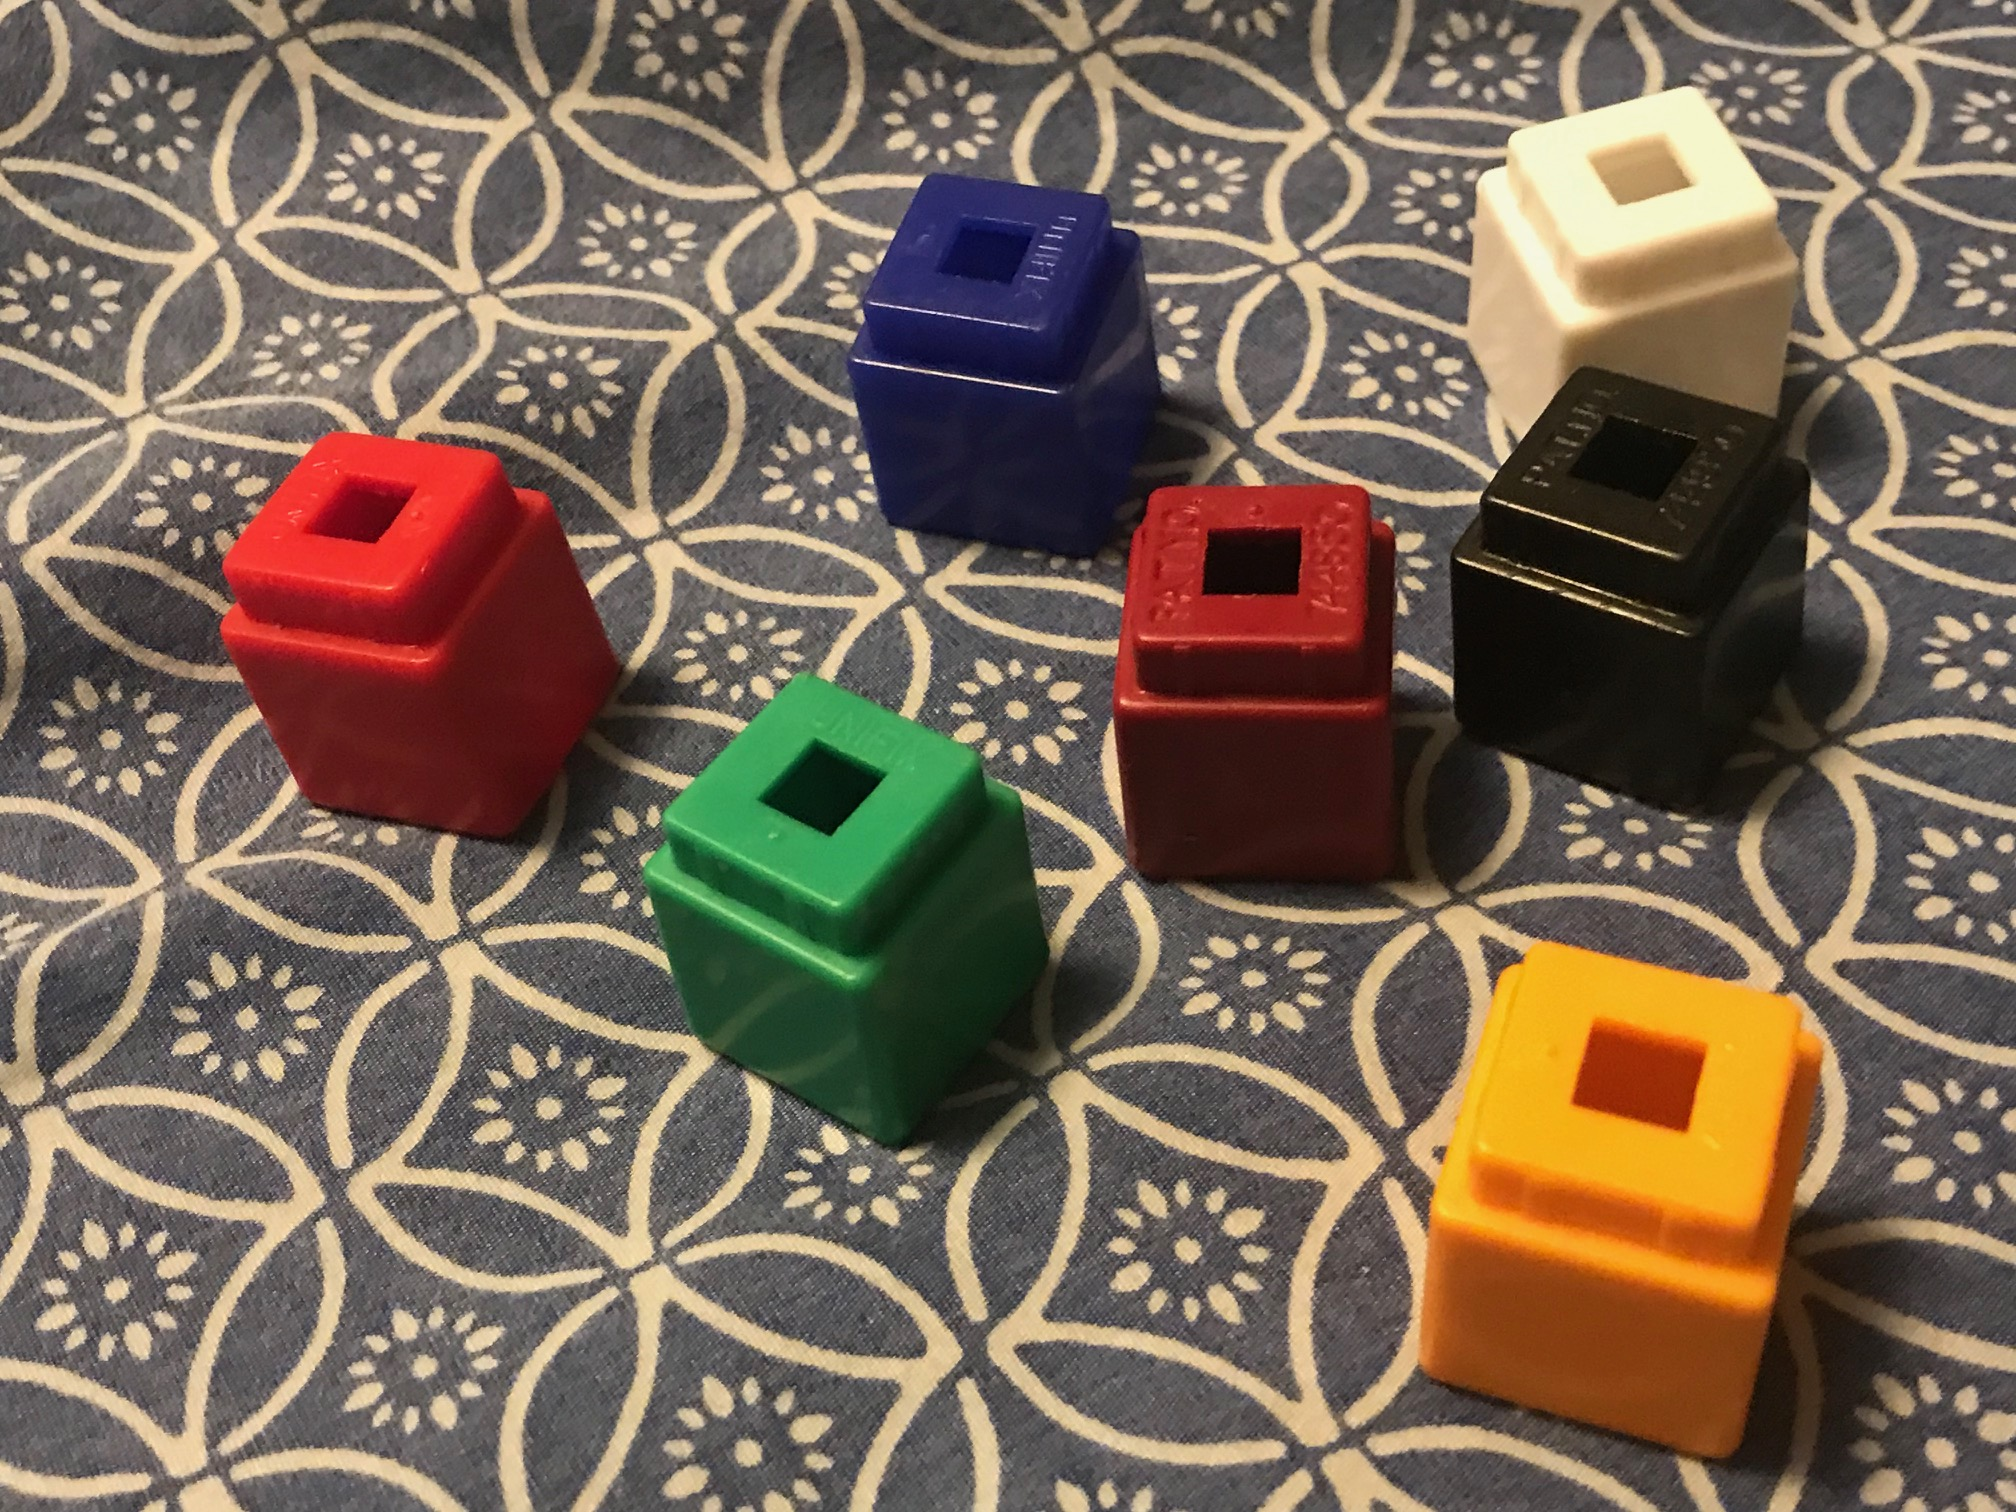 Unifix Math Counting Blocks Teaching Aid from Portland Public Schools: 1330 ppm Cadmium + 7 ppm Arsenic [Cadmium is a known carcinogen.]